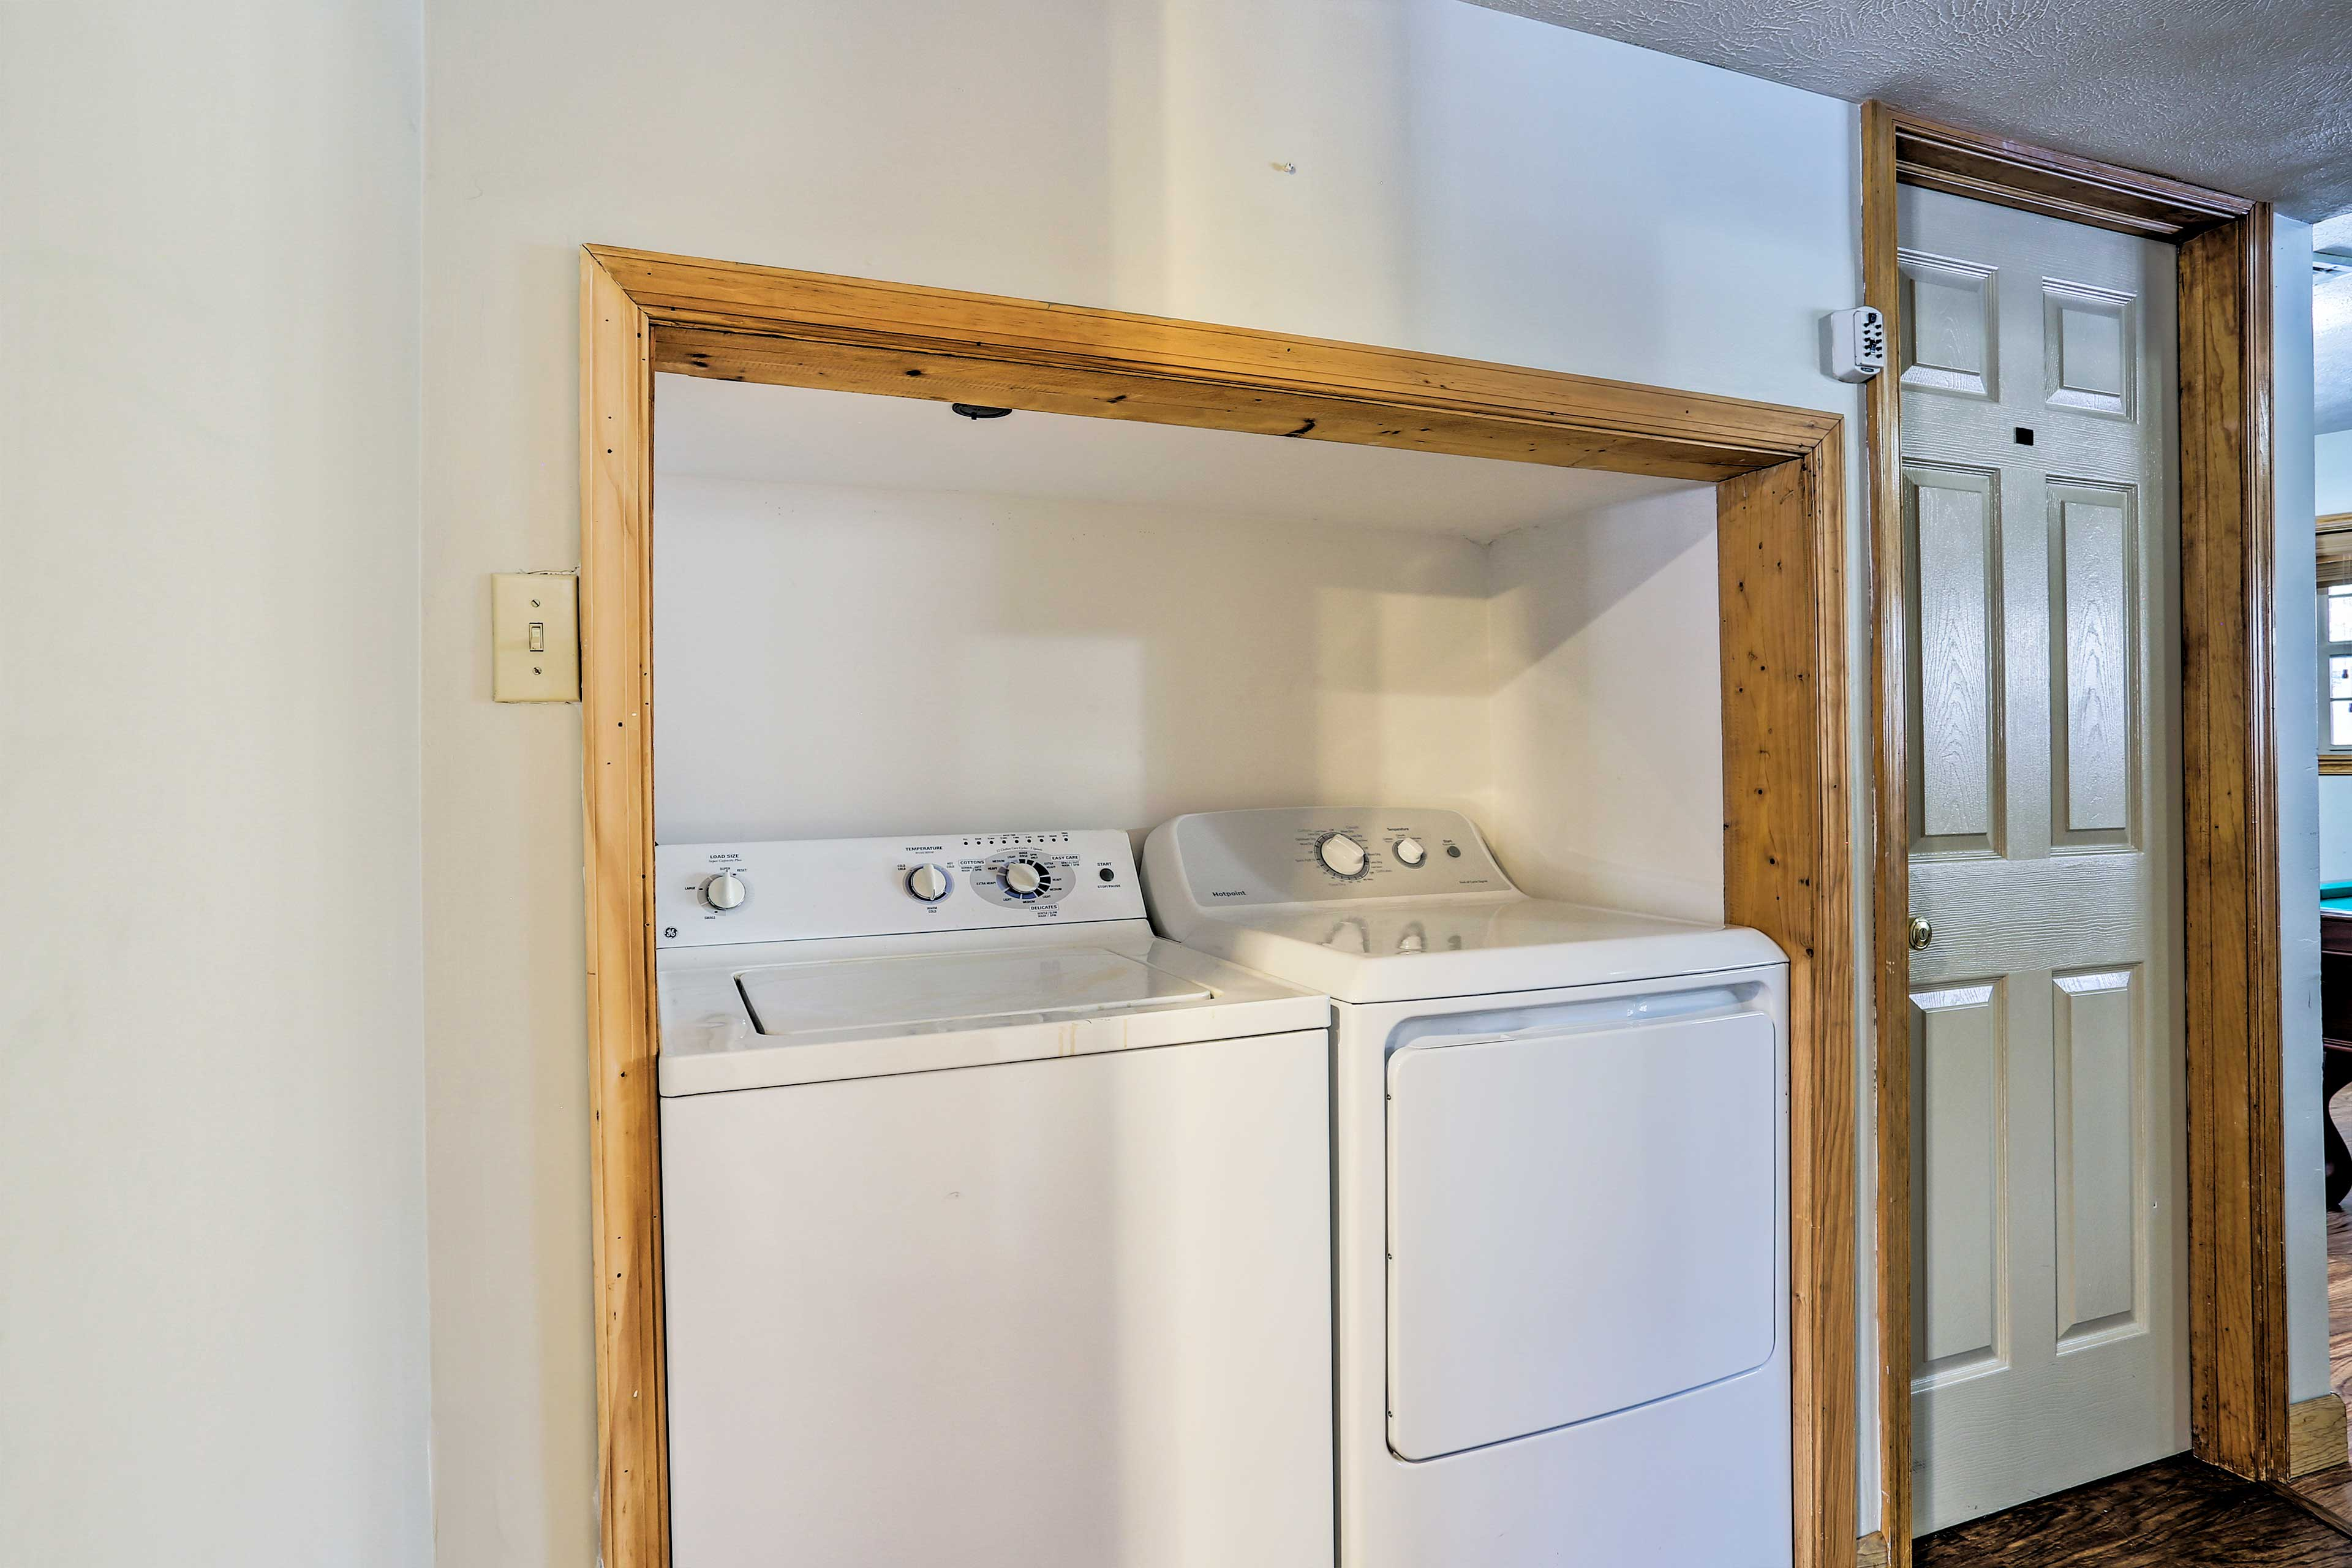 Take care of your clothes by using the convenient washer and dryer.